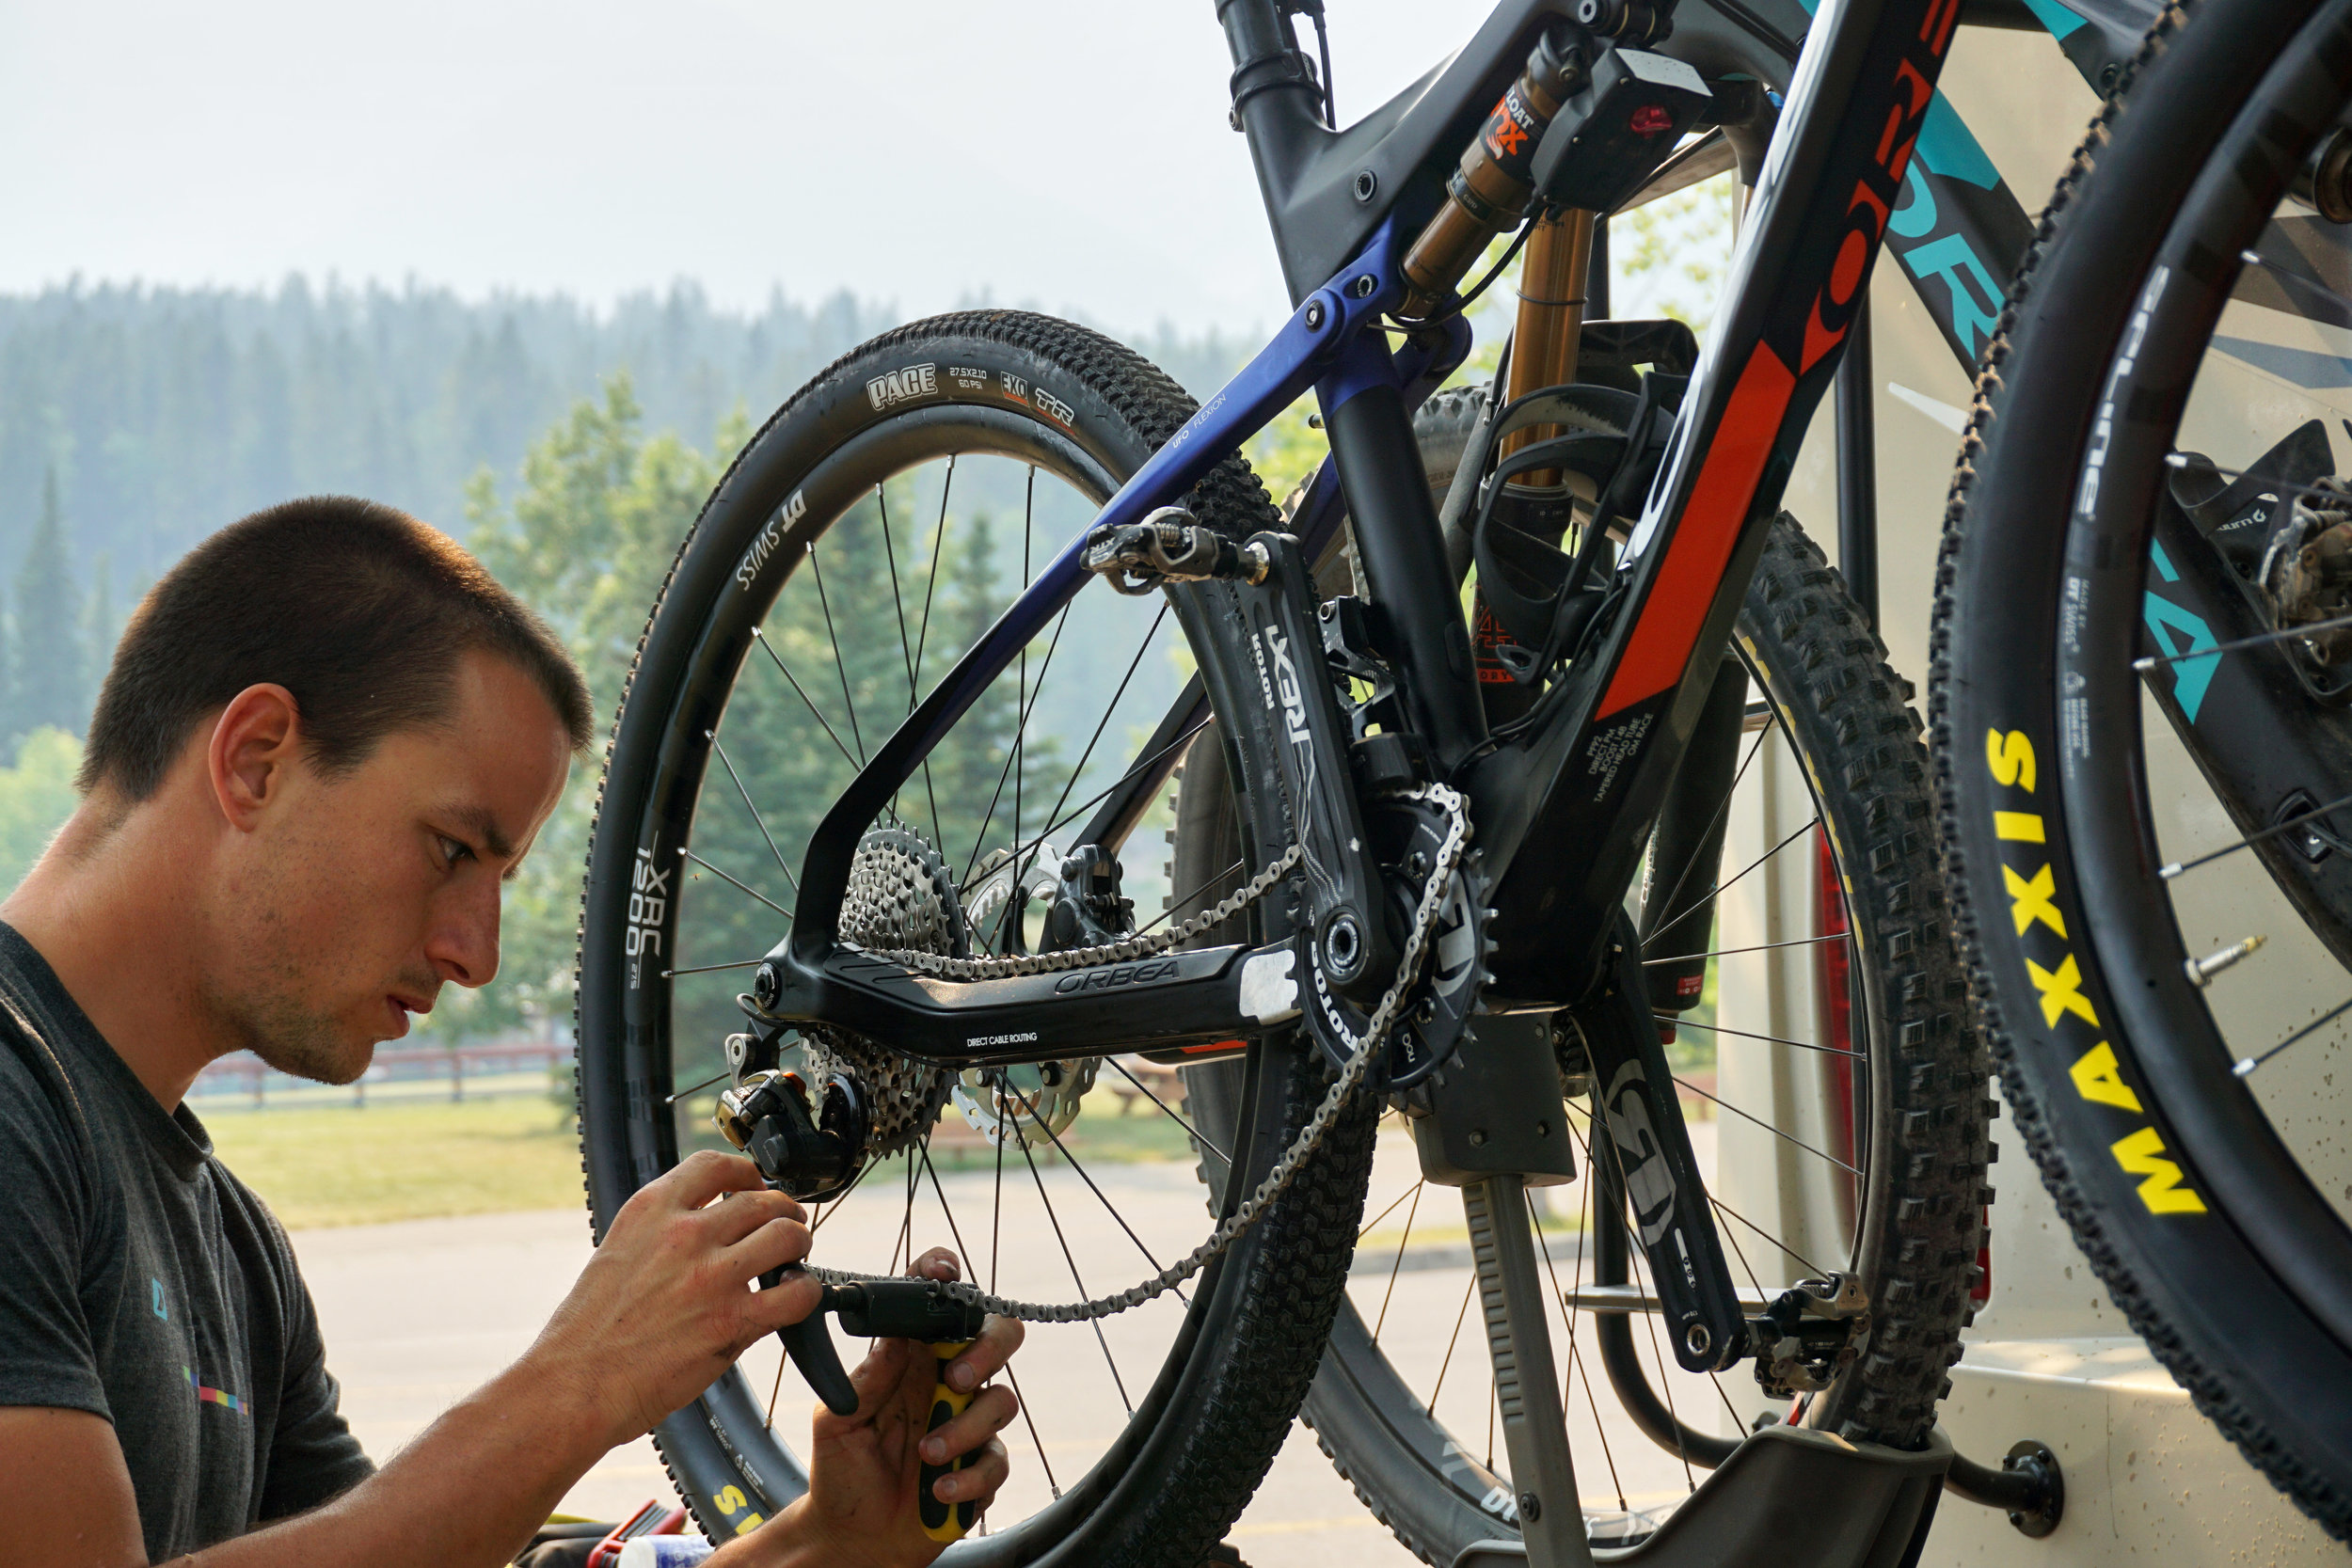 I don't know what I would do with him! When the team is not at races, David does everyhting for me, from prepearing the bike, handing the bottles, entretaining me, training with me, etc. Here, he is being creative and using the car rack on the RV as a bike repair stand, before Nationals.